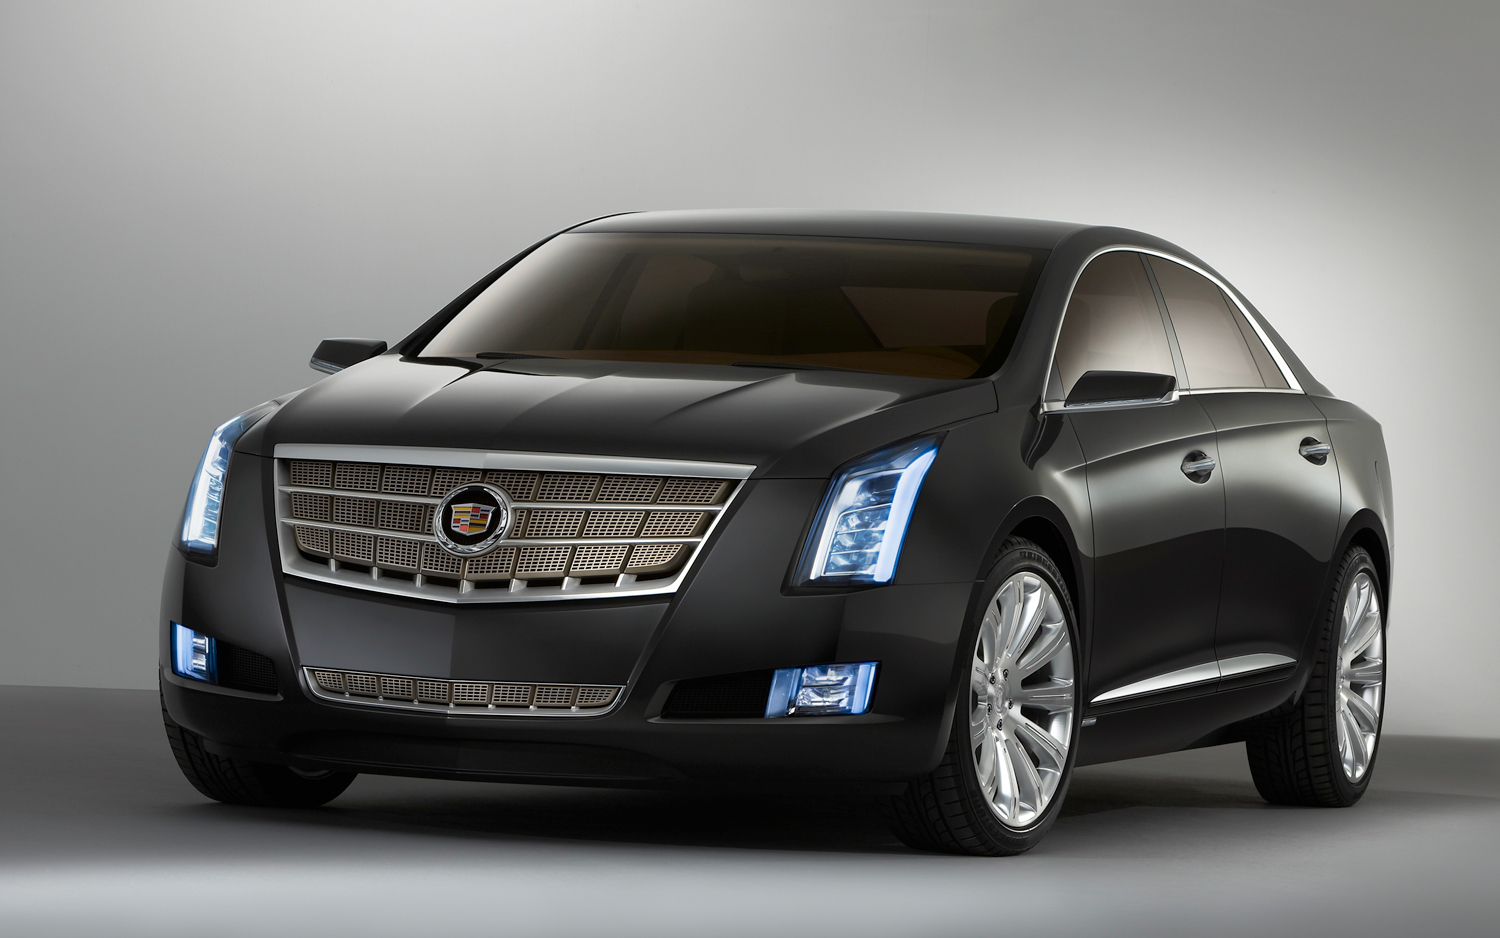 cadillac xts 11 high quality cadillac xts pictures on. Black Bedroom Furniture Sets. Home Design Ideas